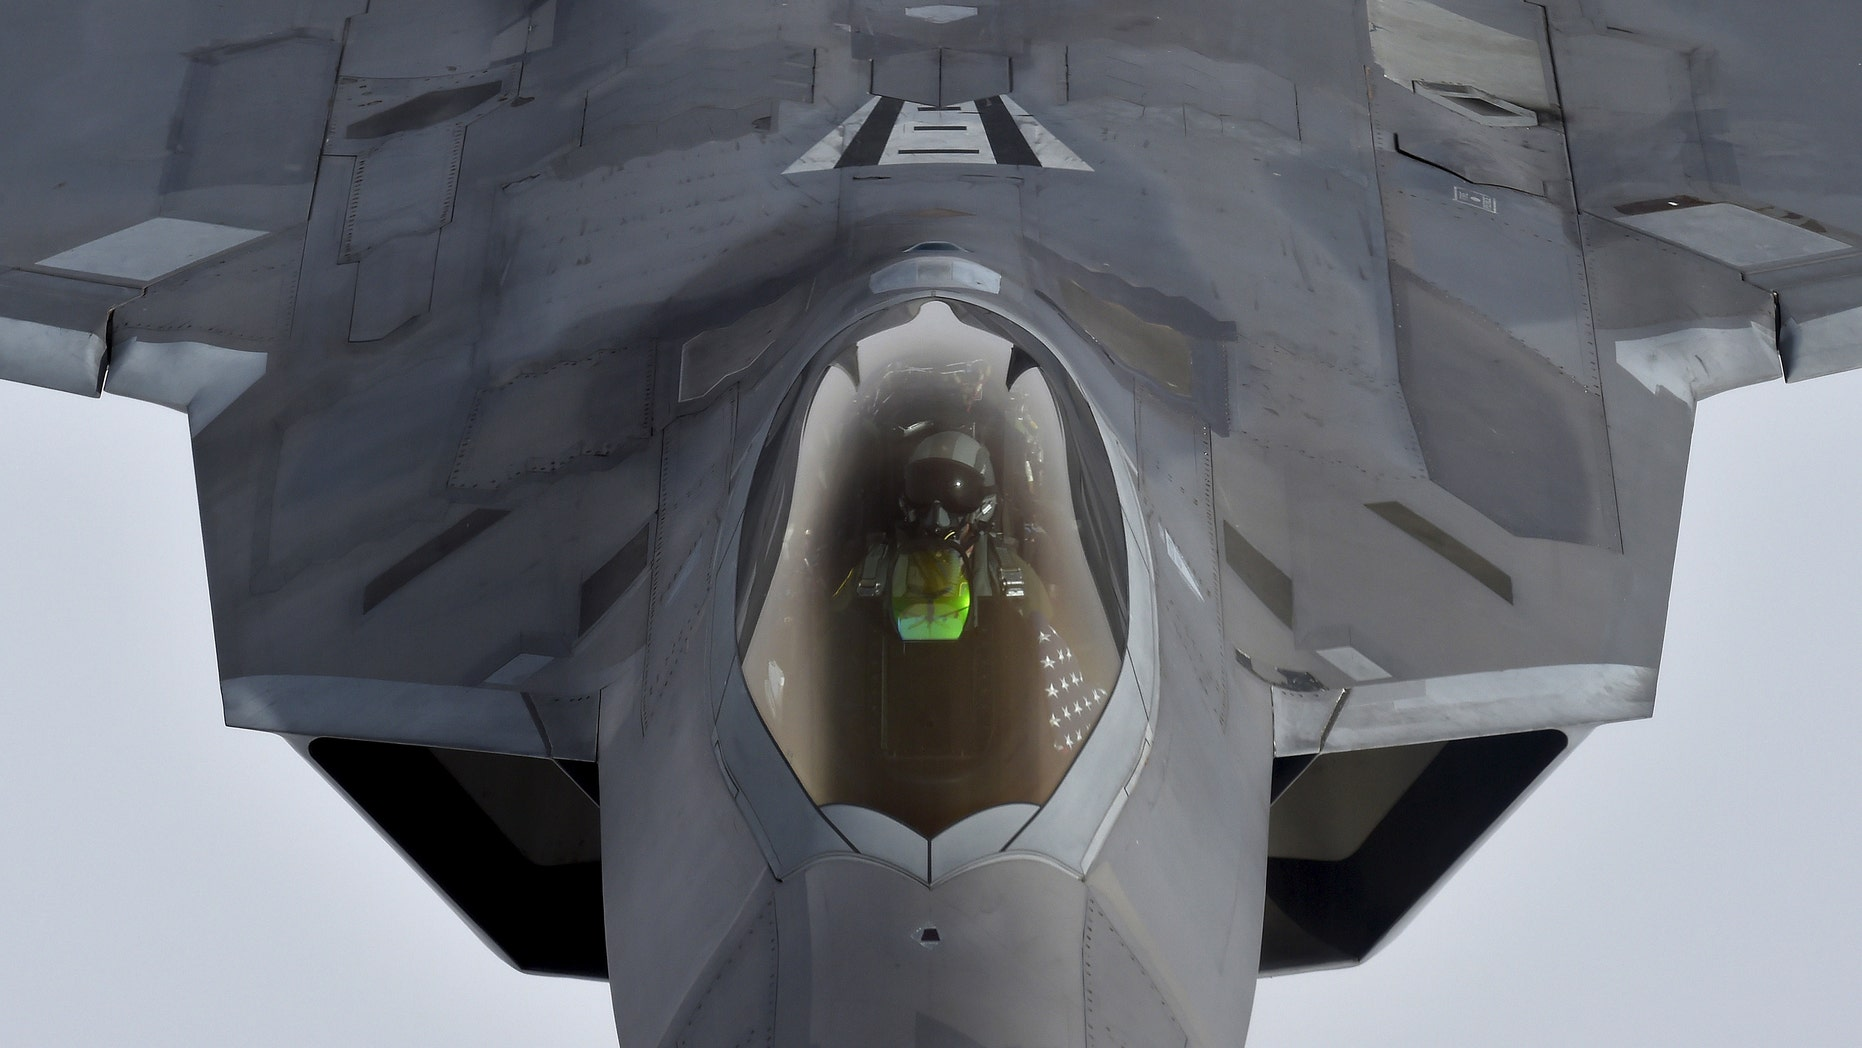 File photo - A pilot looks up from a U.S. F-22 Raptor fighter as it prepares to refuel in mid-air with a KC-135 refuelling plane over European airspace during a flight to Britain from Mihail Kogalniceanu air base in Romania April 25, 2016.